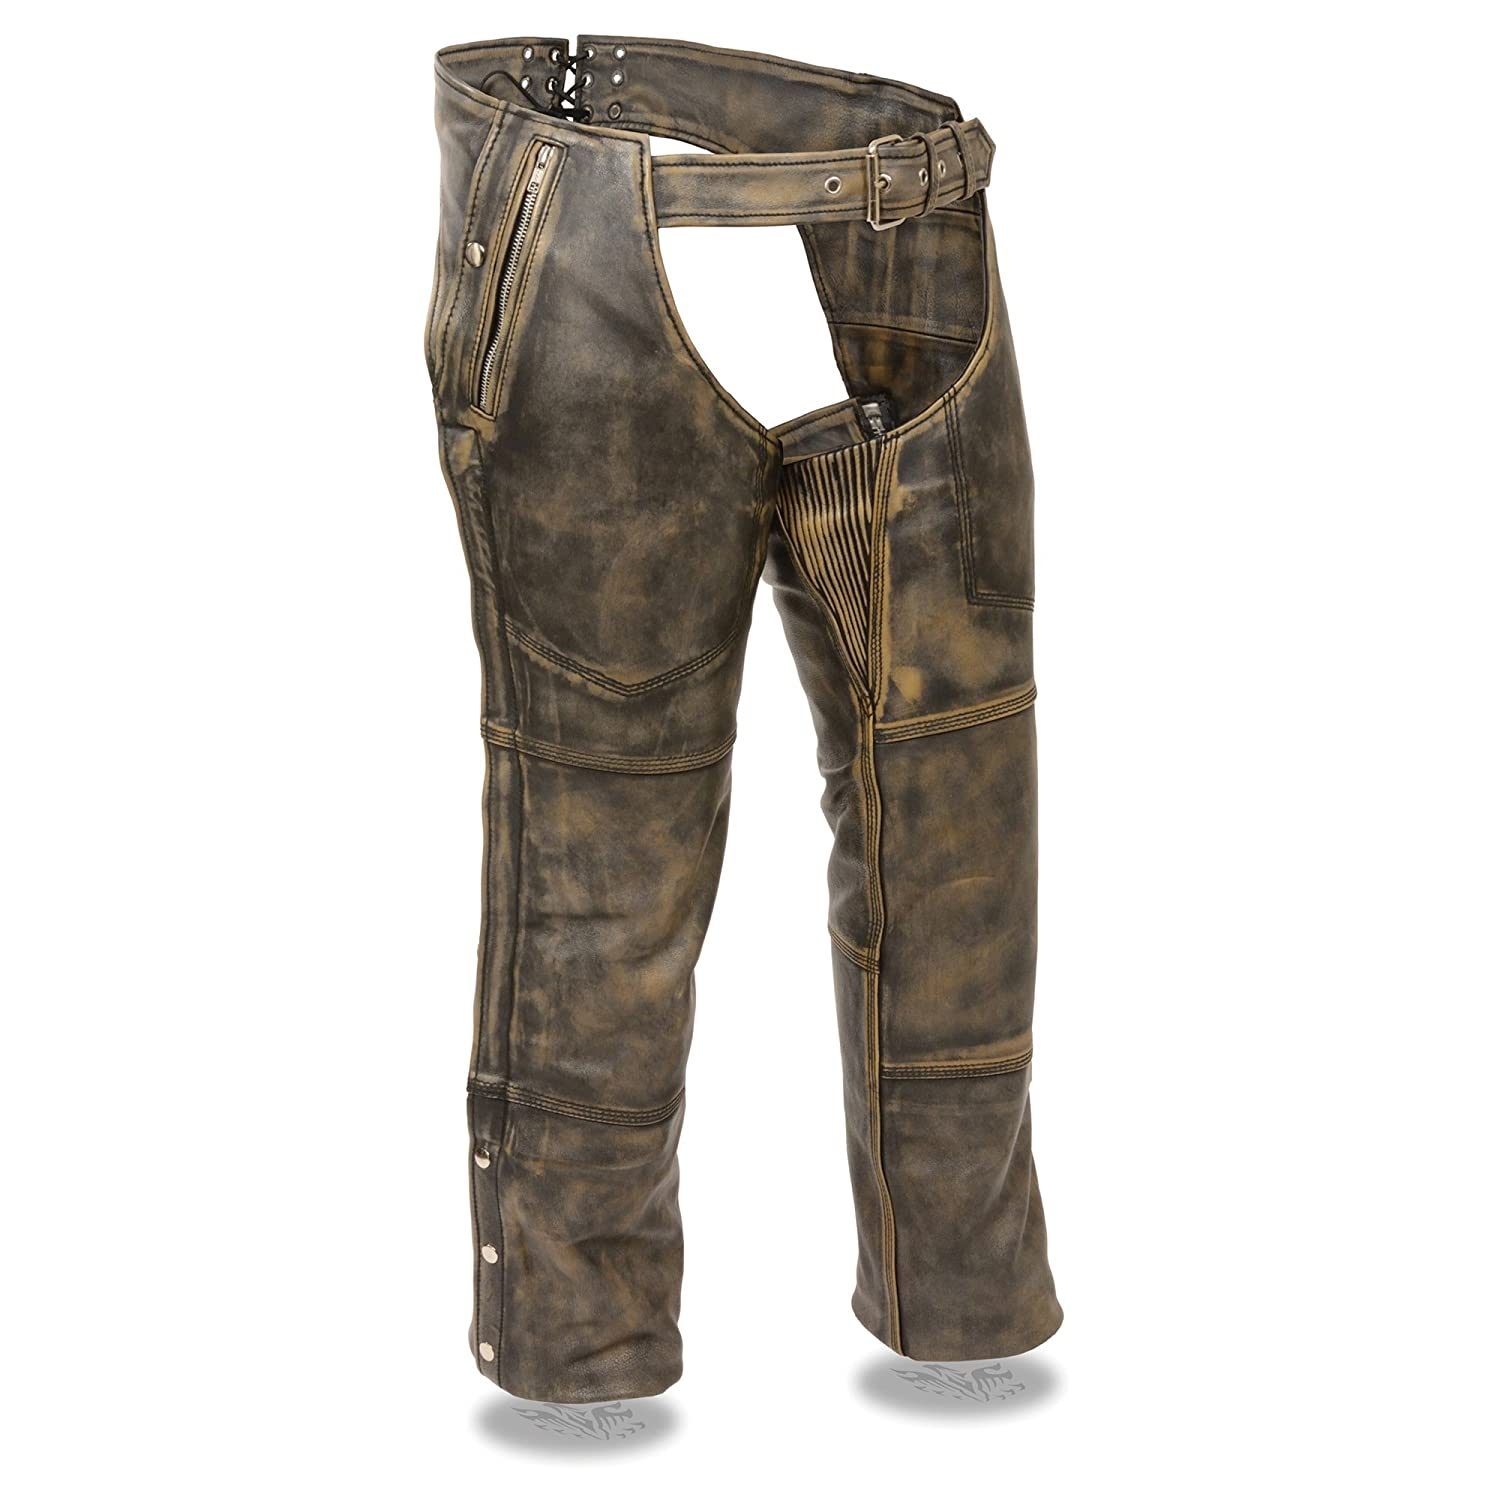 ZOOM LEATHER-Mens Distressed brown Four Pocket Thermal Lined Chap-BLK//BEIGE-XS Shaf International Inc ZLM11000-BLK//BEIGE-XS